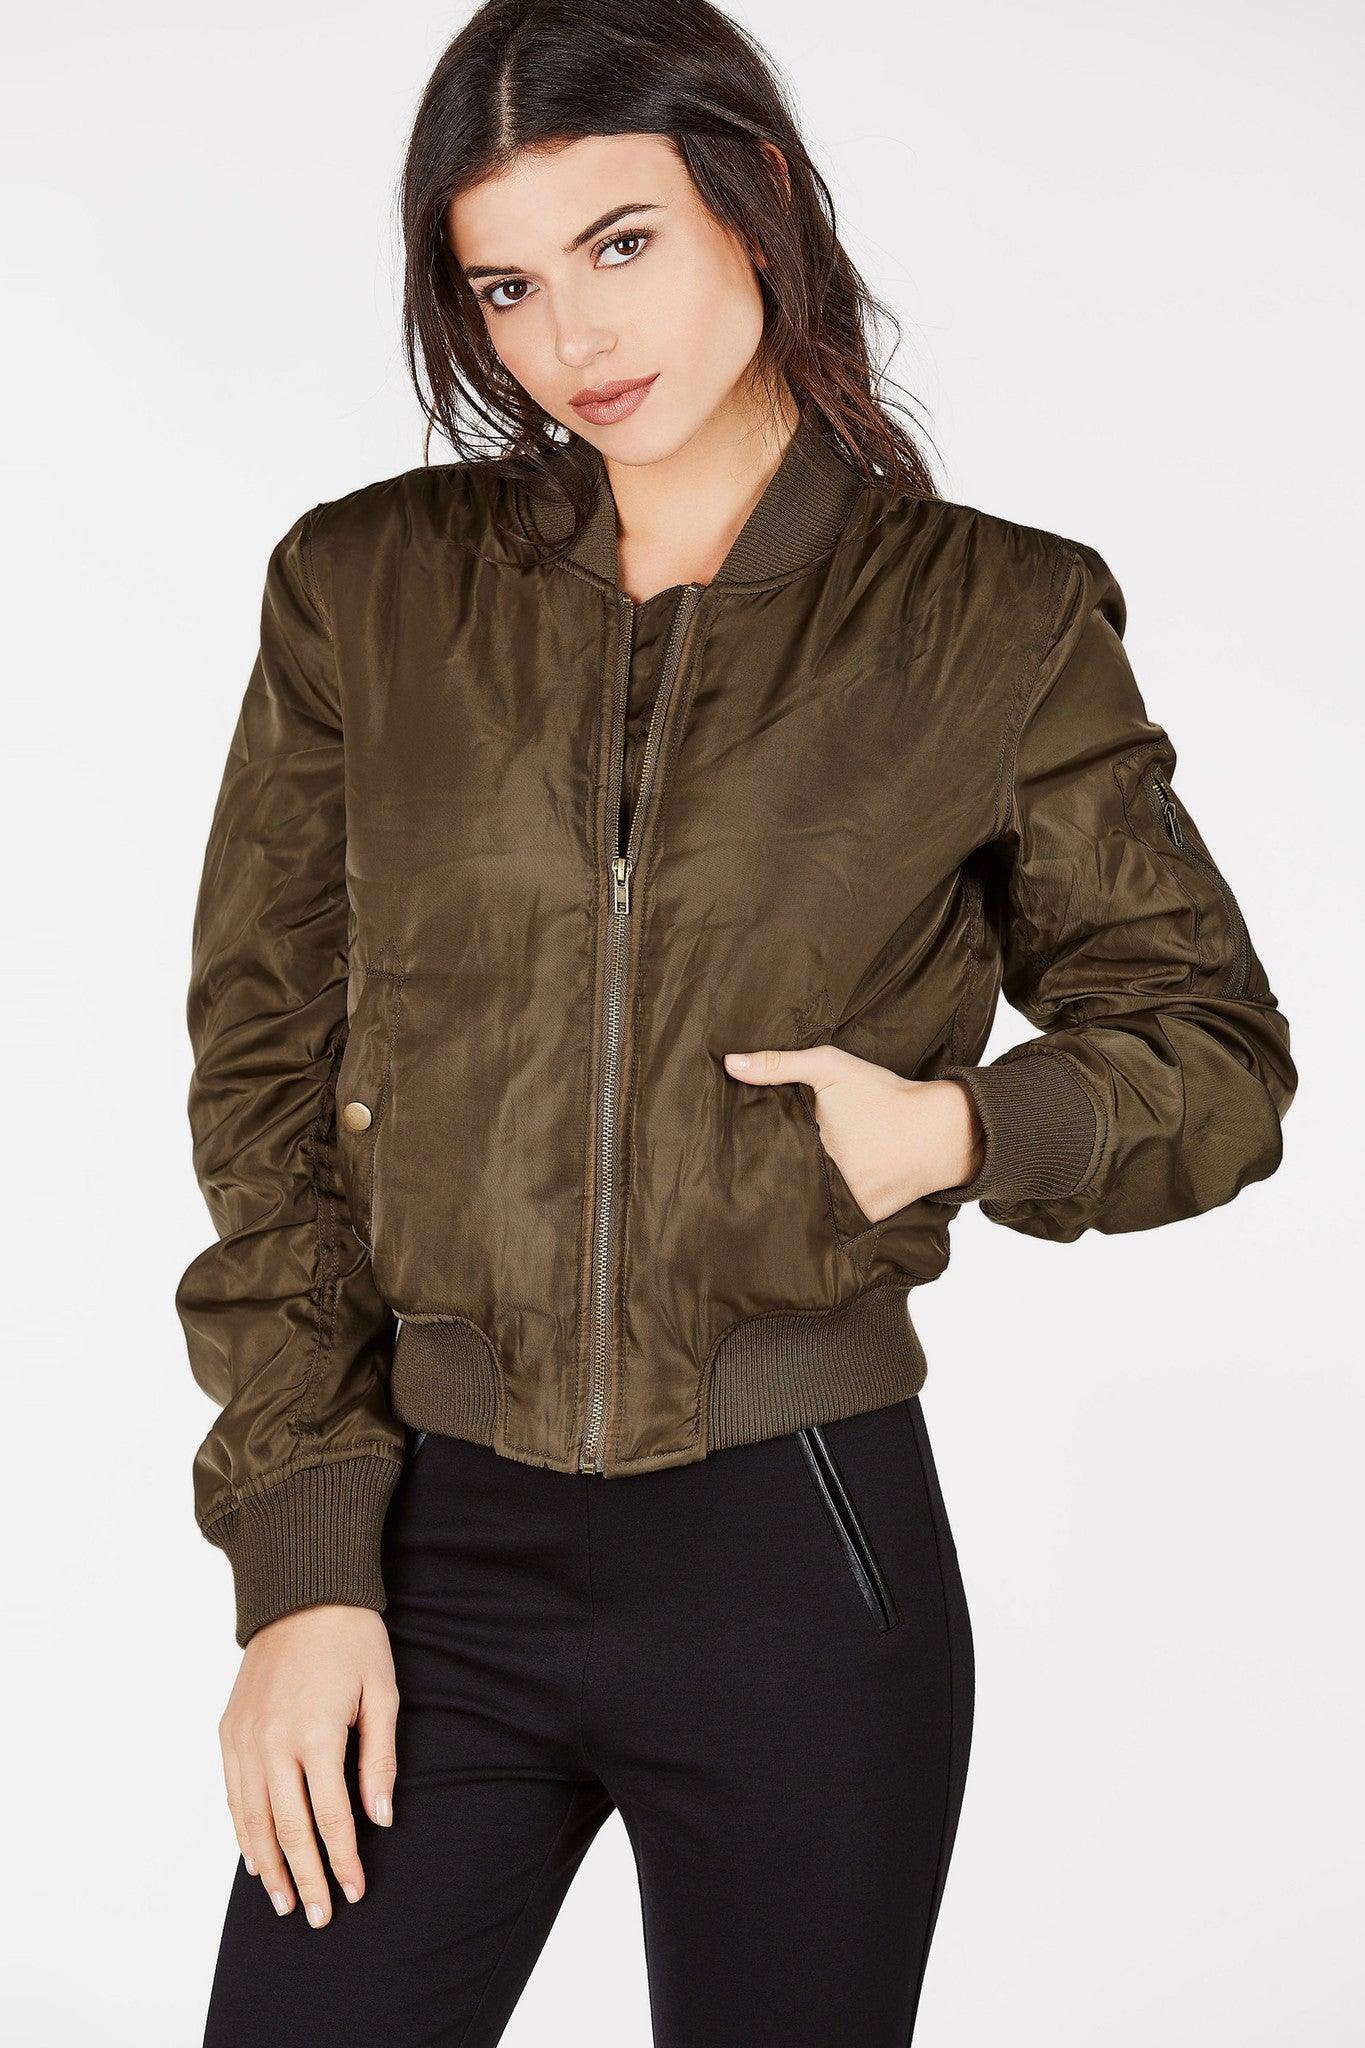 A bomb a** bomber jacket perfect for the upcoming chilly weather! This bomber is lined inside and features three fully functional pockets. Has cuffed ribbed sleeves and hem. Stretchy hemline for fit.